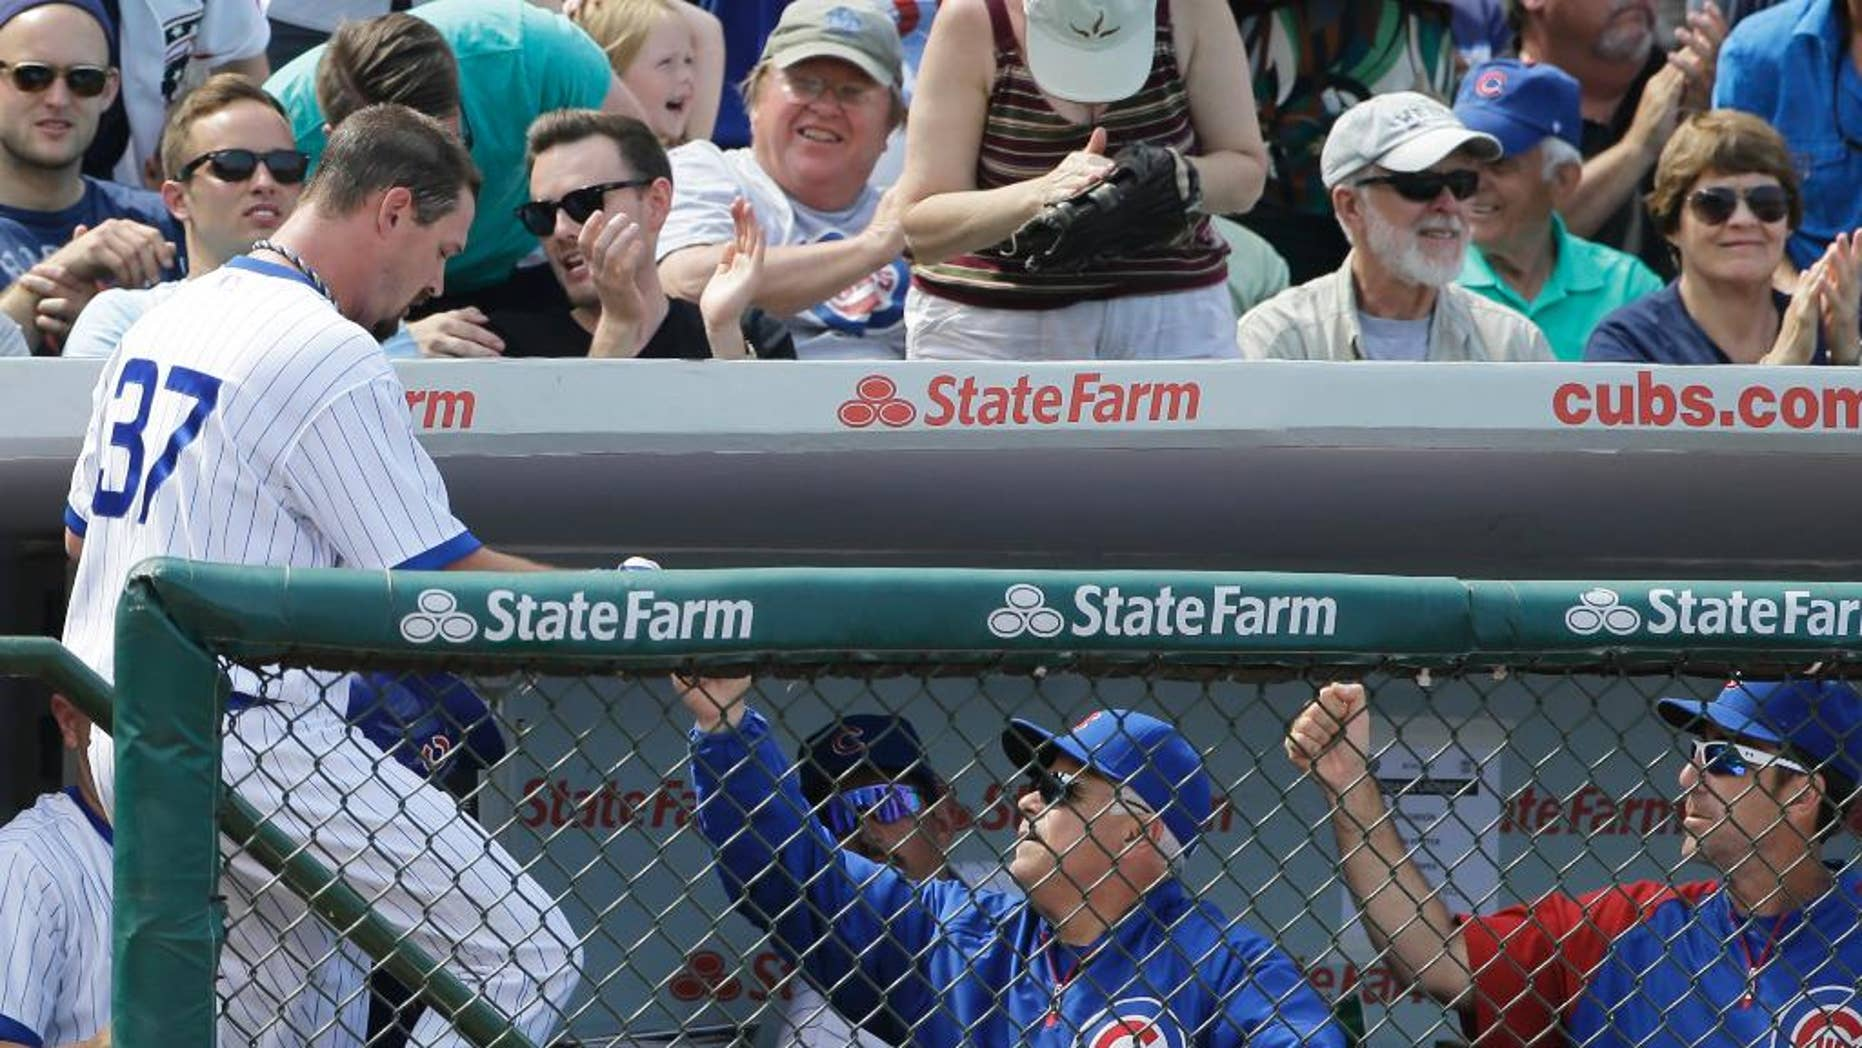 Chicago Cubs' Travis Wood, left, celebrates with manager Rick Renteria after scoring on a single hit by Javier Baez during the fifth inning of an interleague baseball game against the Tampa Bay Rays in Chicago, Sunday, Aug. 10, 2014. (AP Photo/Nam Y. Huh)